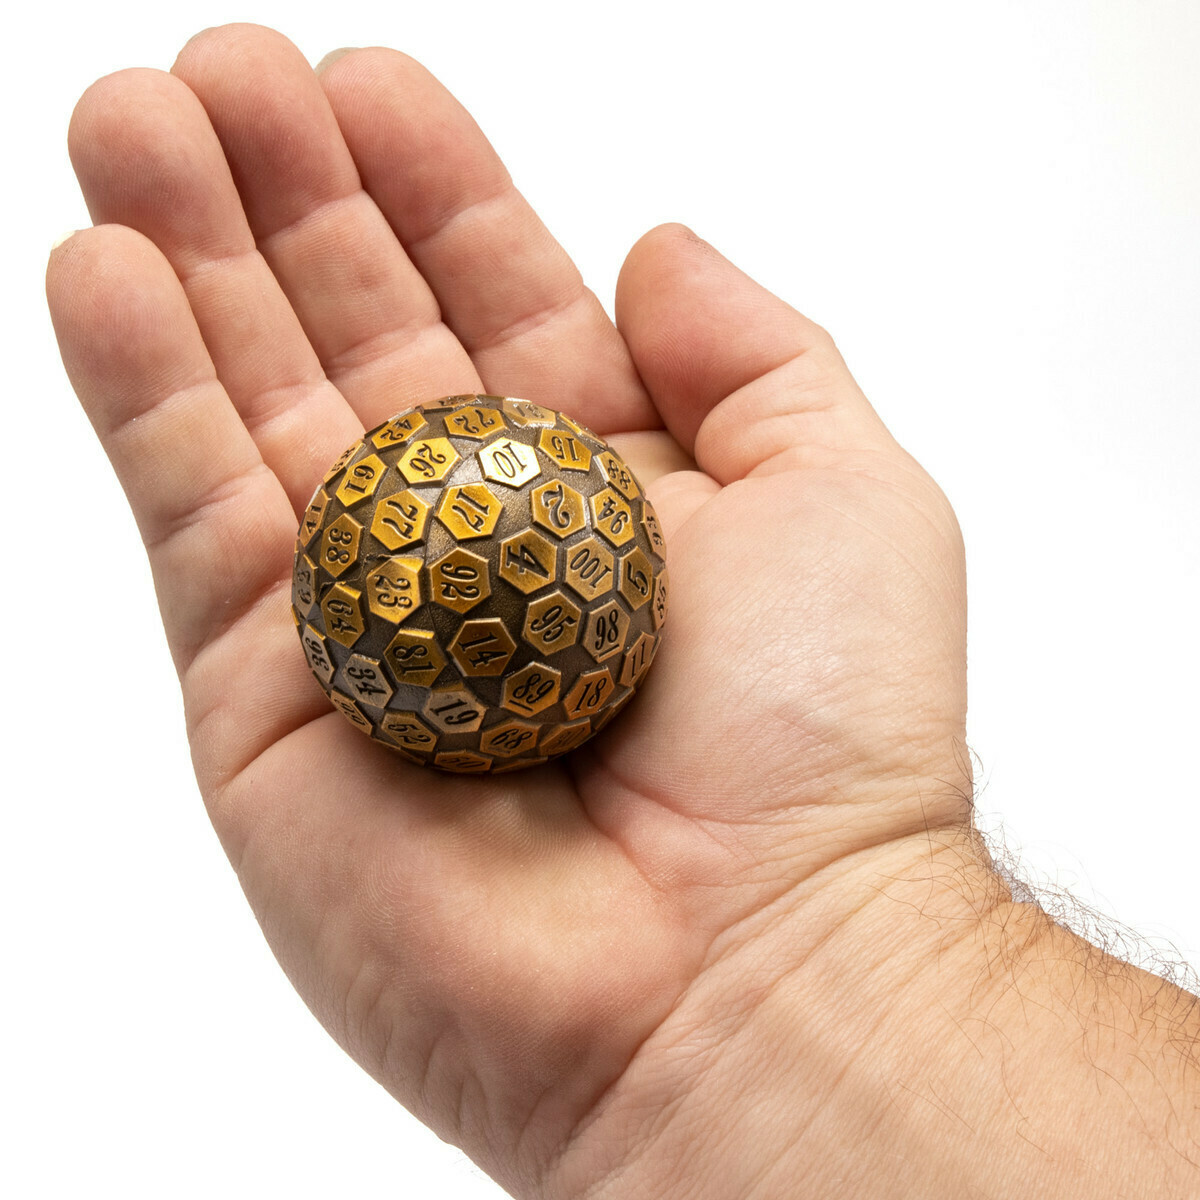 45MM Metal D100 Die - Orb of Predestined Fate - Ancient Gold RPG Tabletop